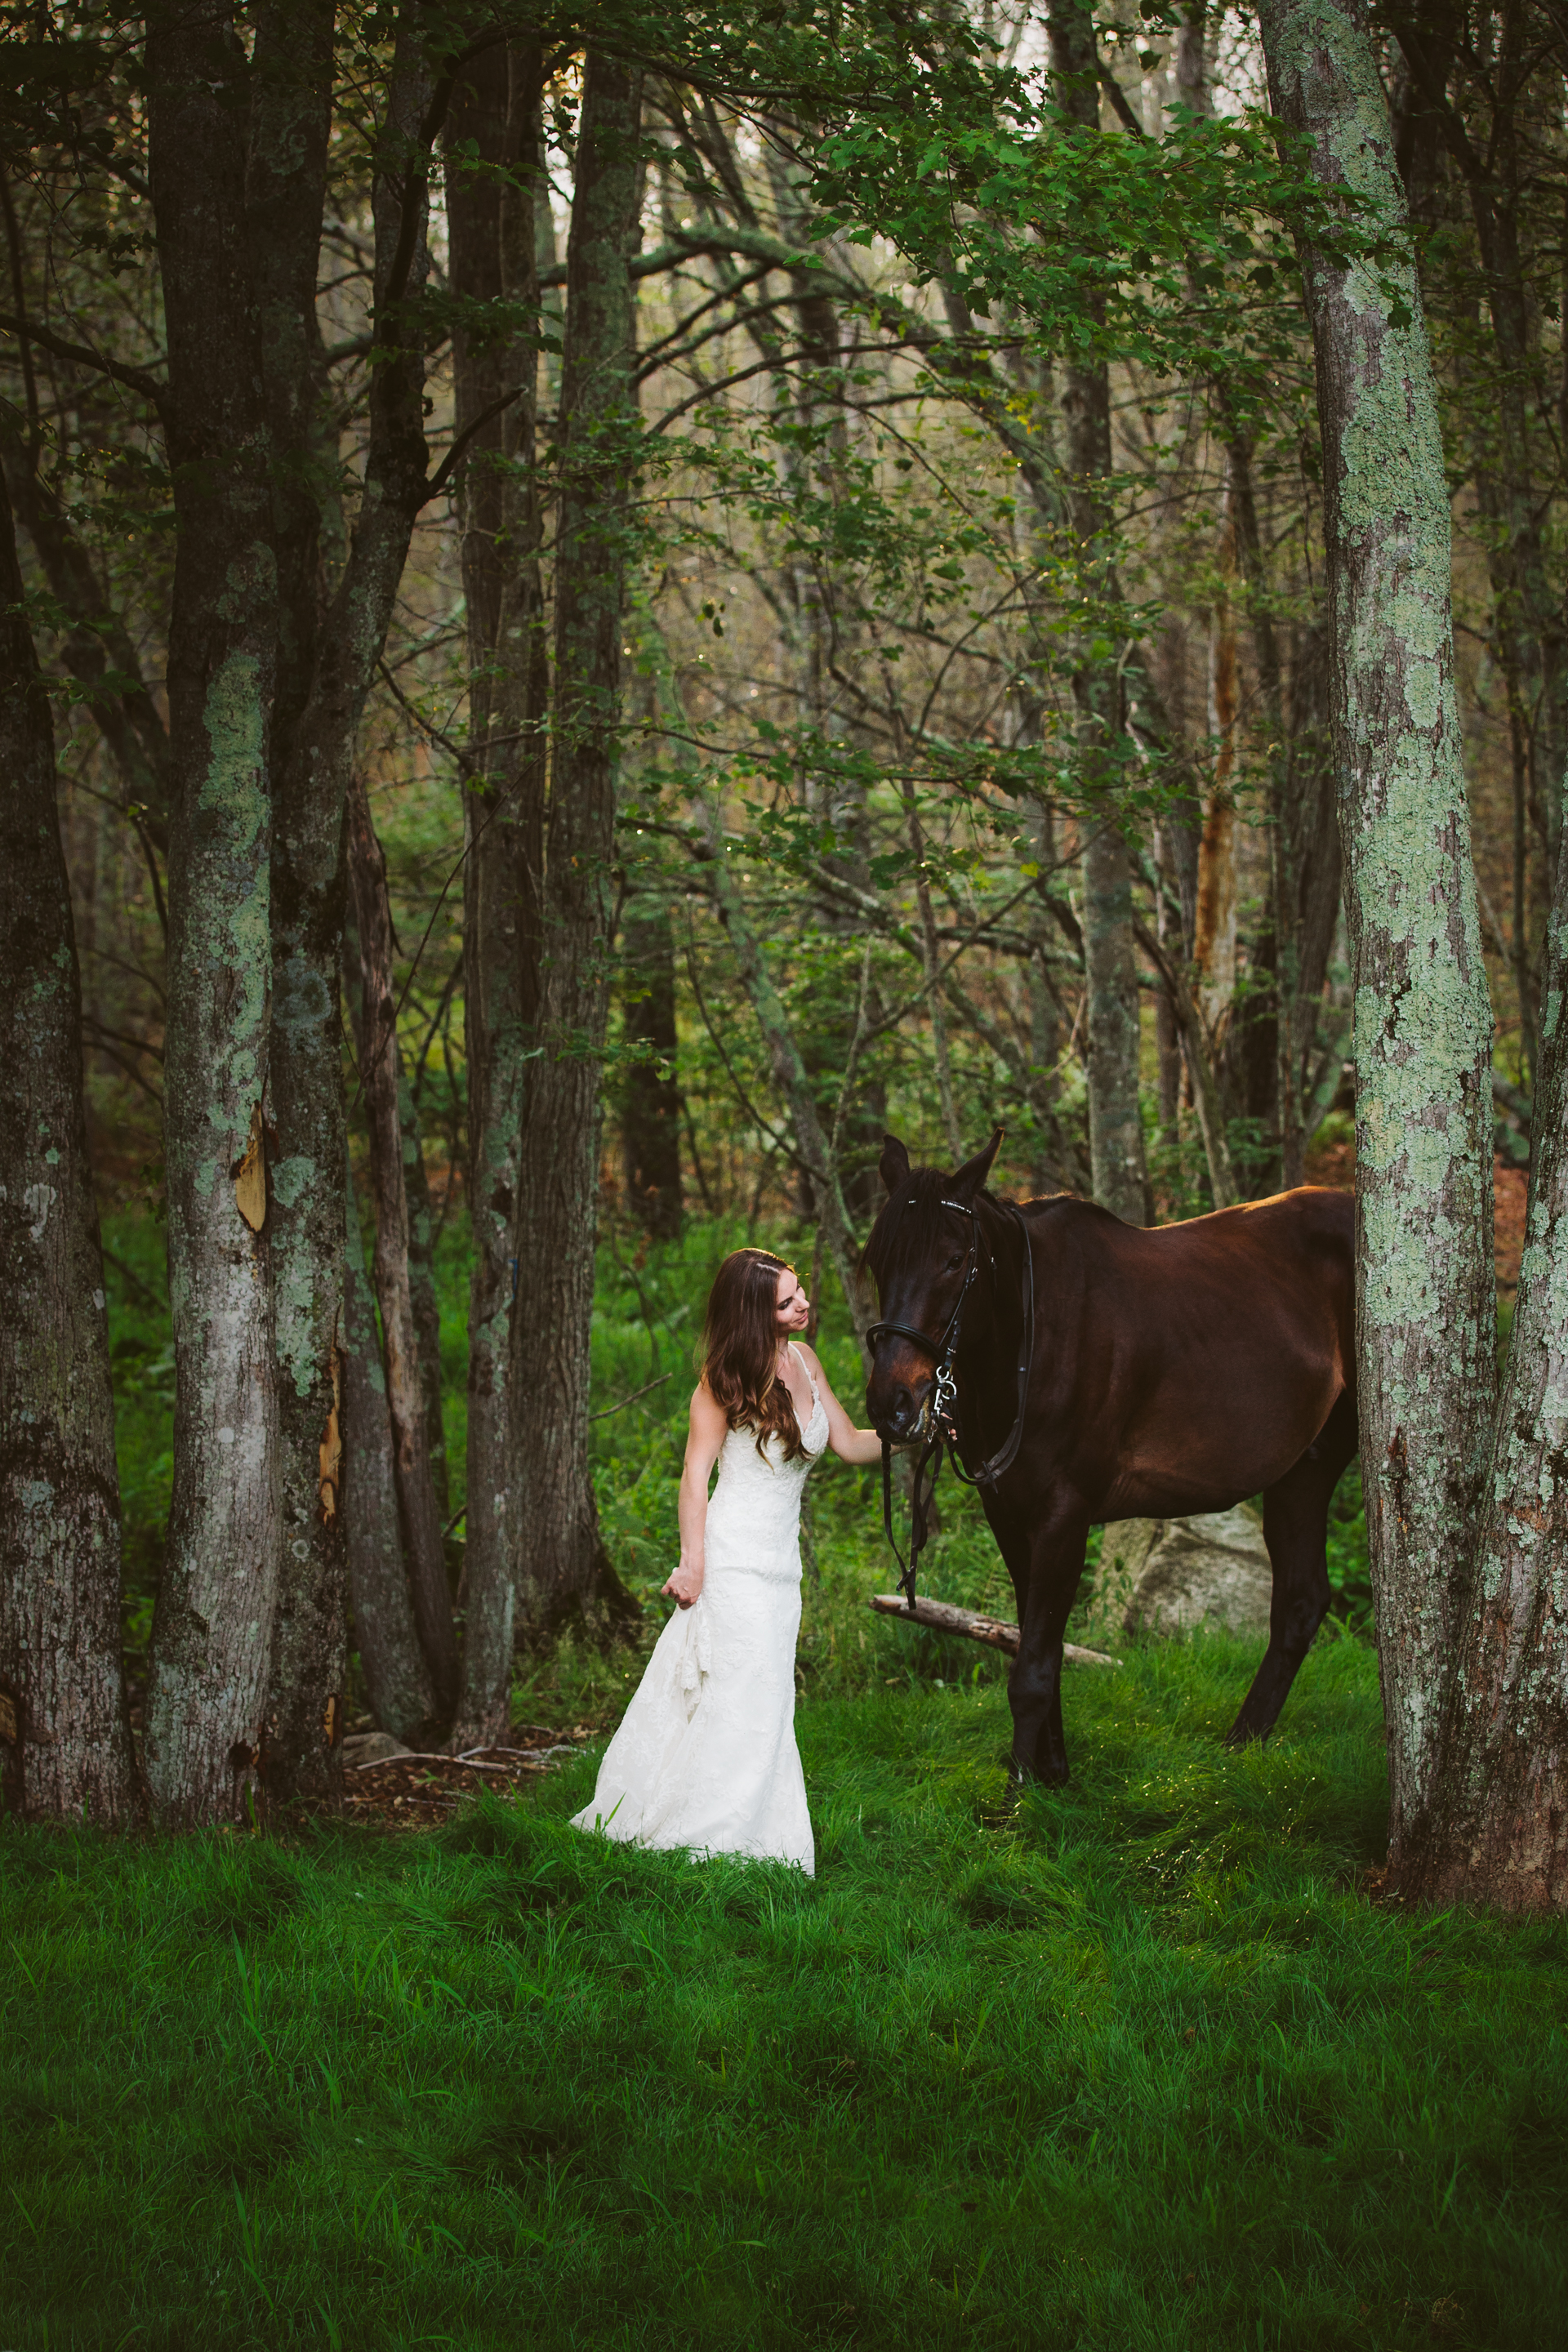 Photographybyamandamorgan-horse-wedding-bride-4.jpg